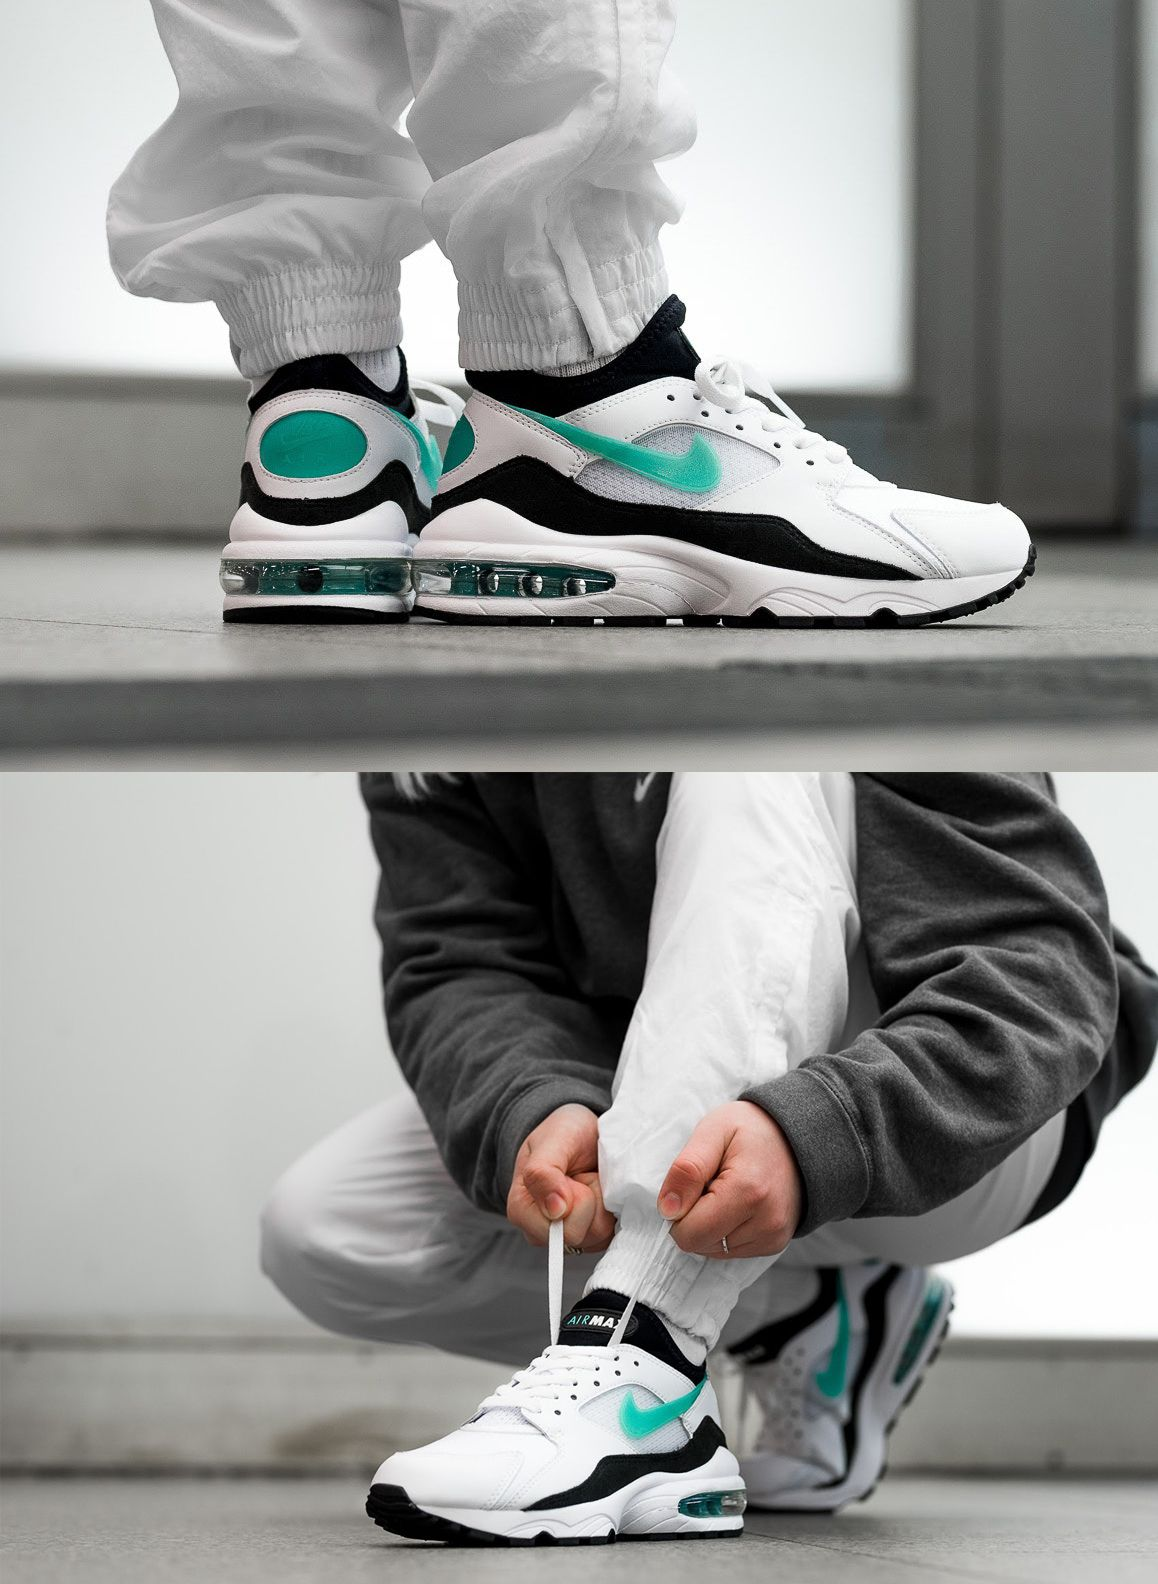 low cost great look buy good Nike Air Max 93 OG